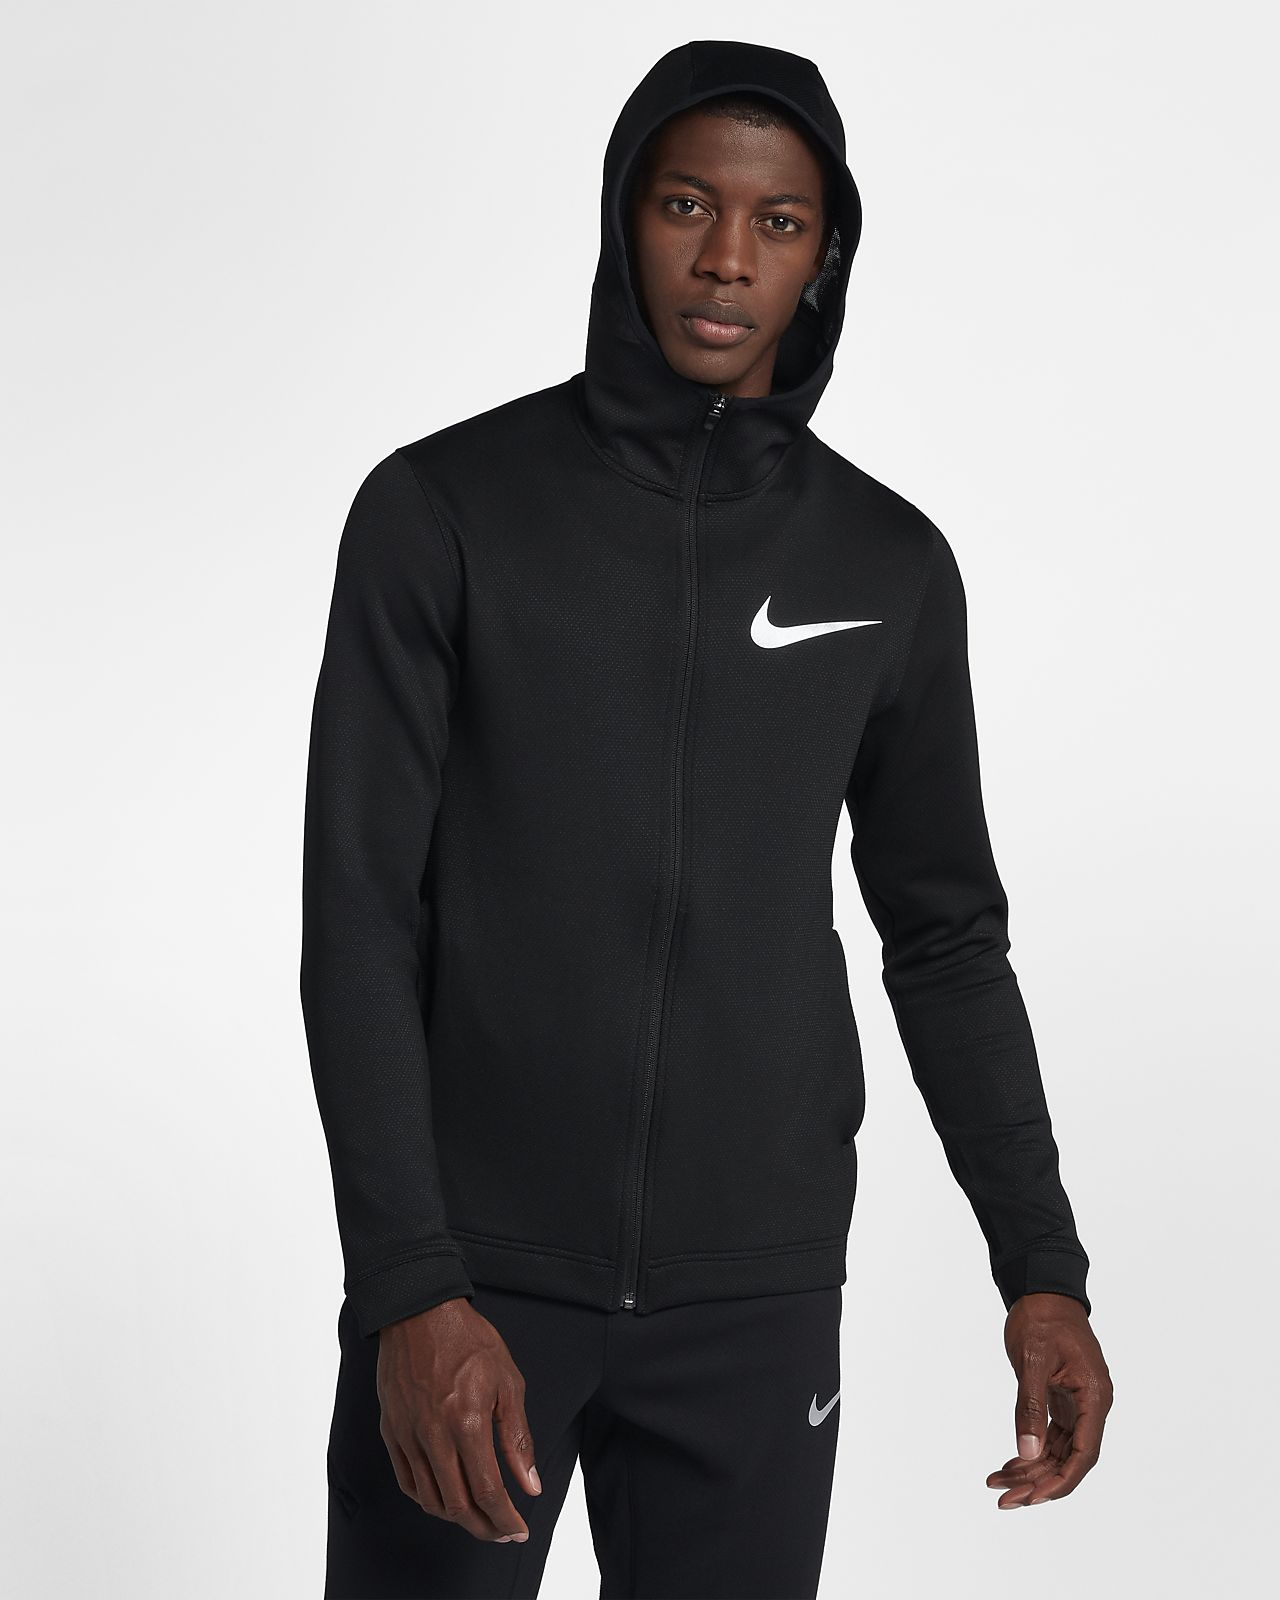 94352074d03 Nike Therma Flex Showtime Men s Full-Zip Basketball Hoodie. Nike.com